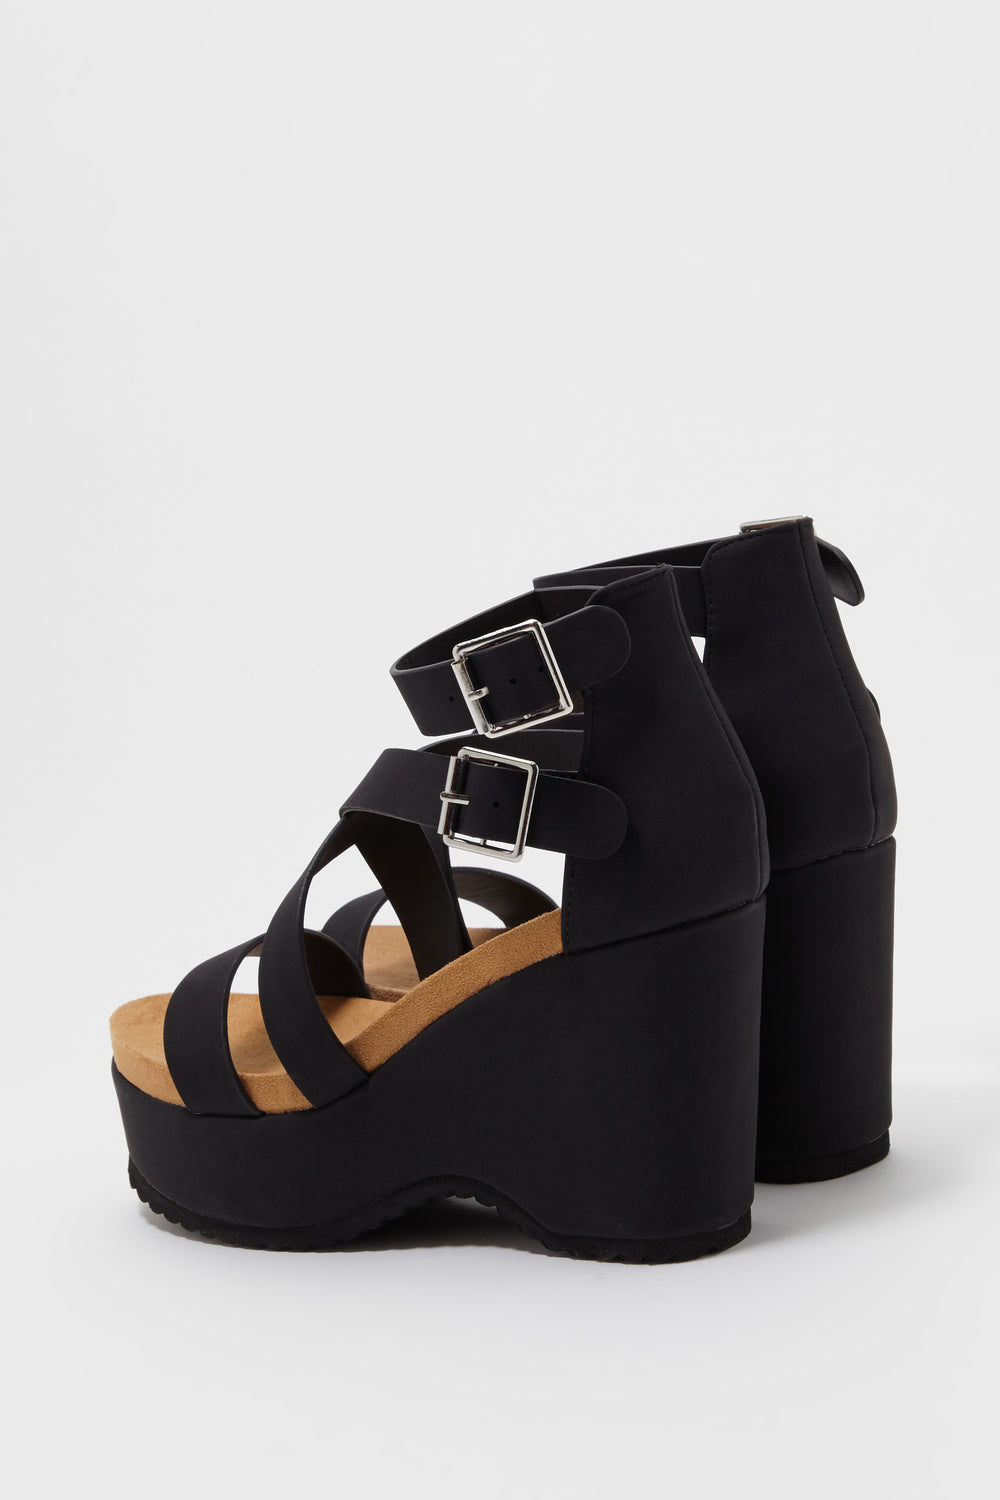 Banded Platform Wedge Sandal Black